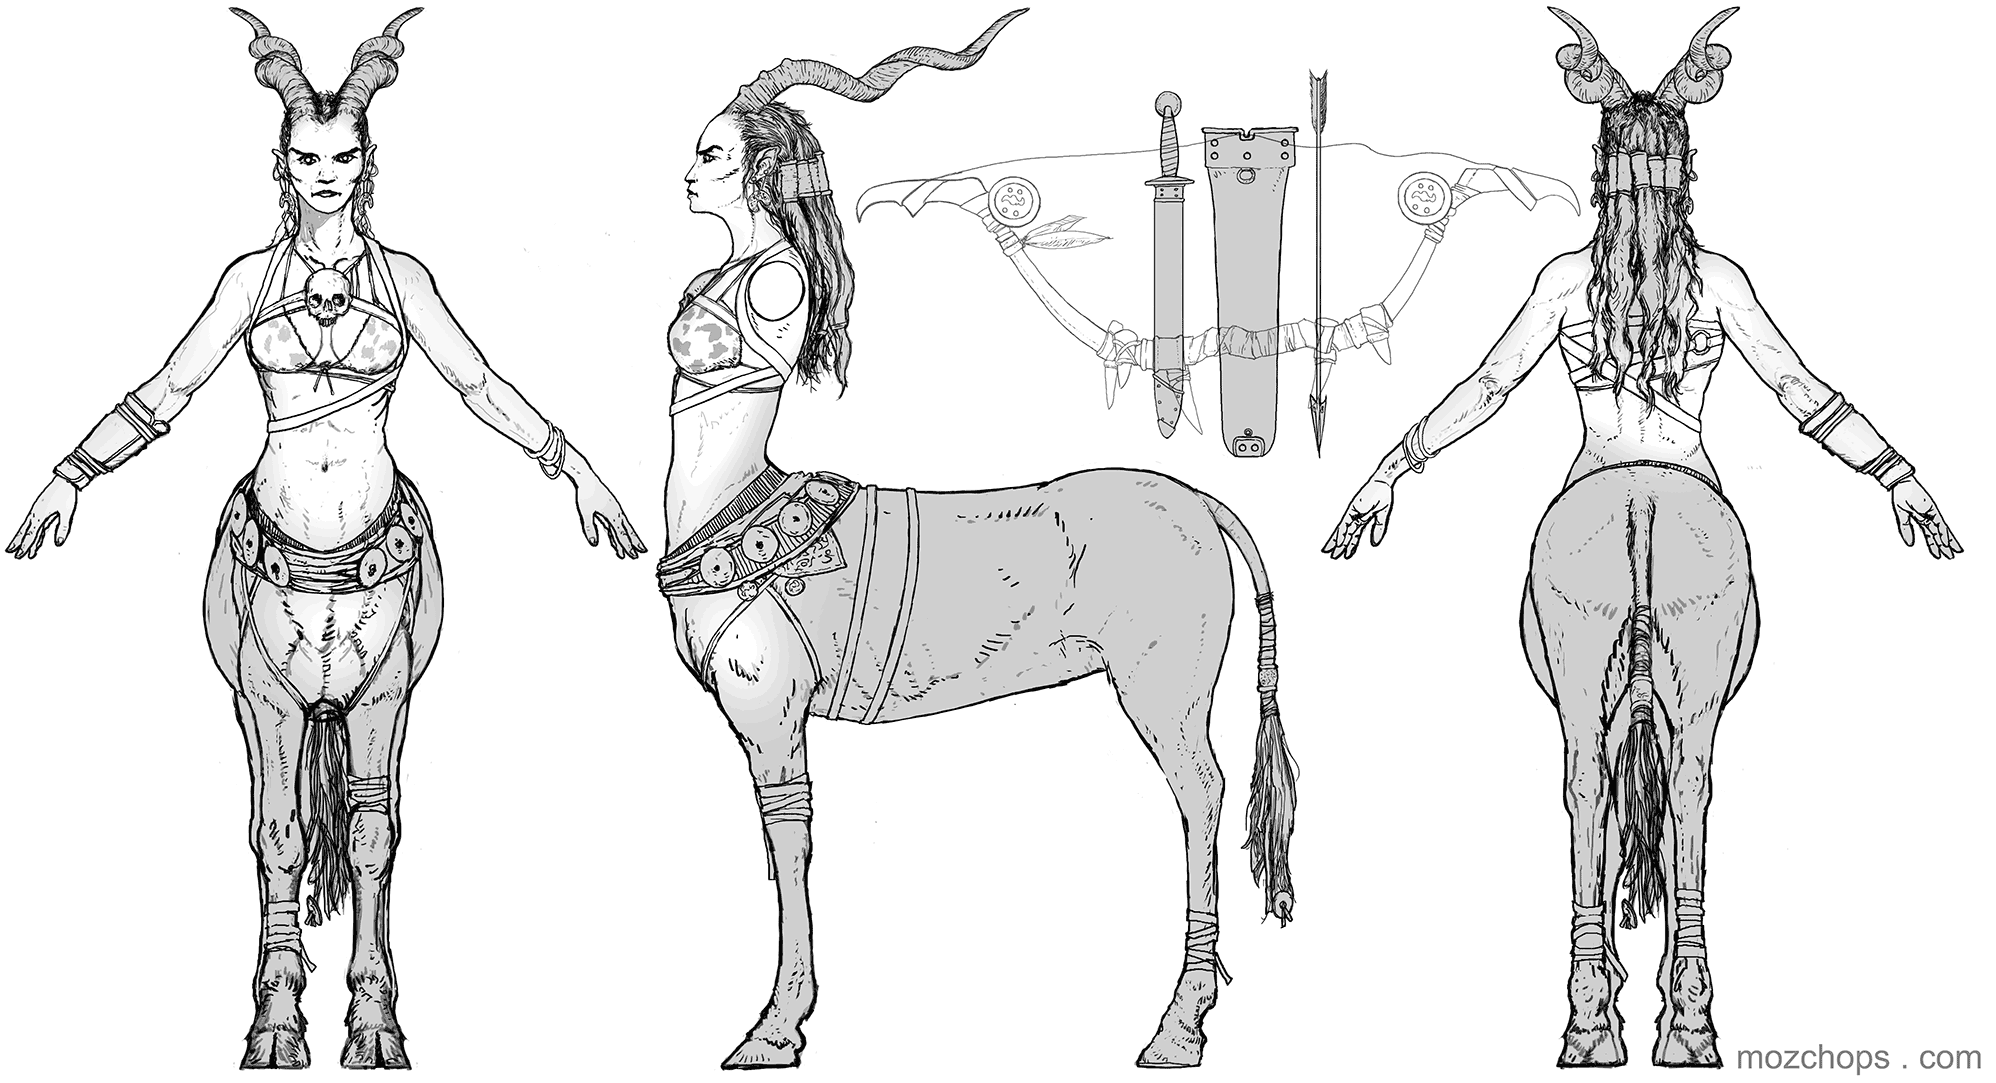 centaur-tpose-orthographic-by-mozchops